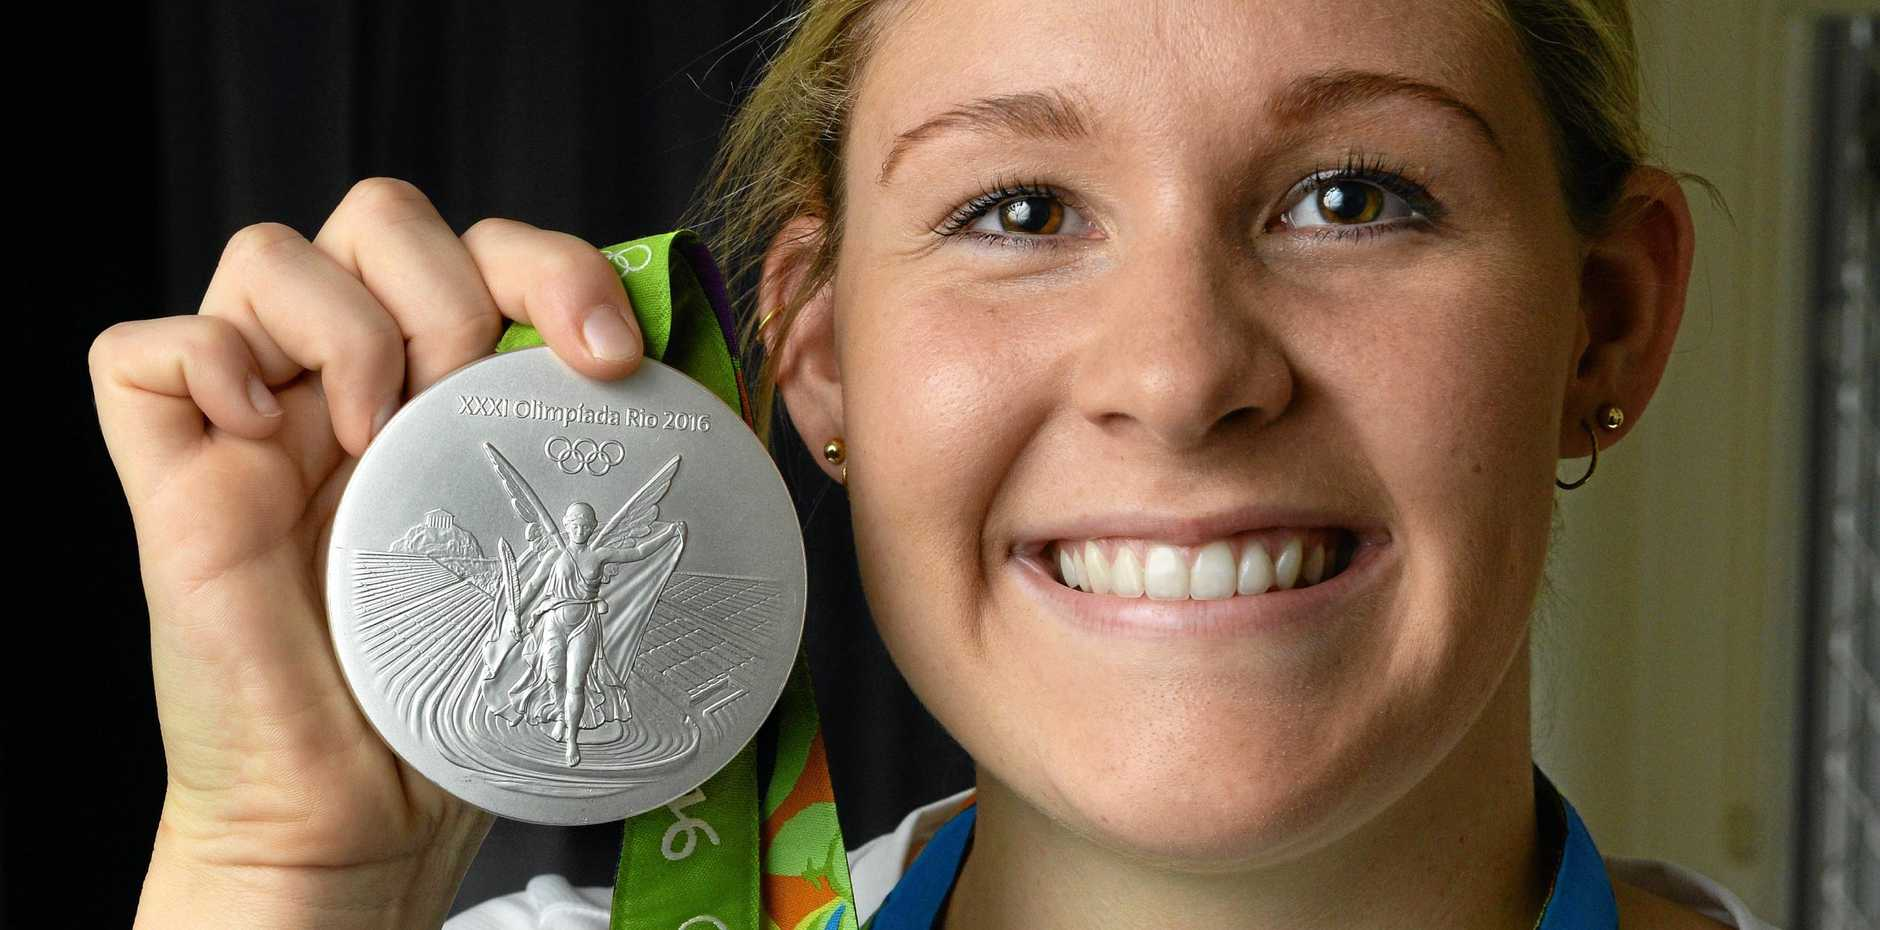 Ipswich swimmer Leah Neale is hoping to add more medals to her international collection after winning a silver at the 2016 Rio Olympics.